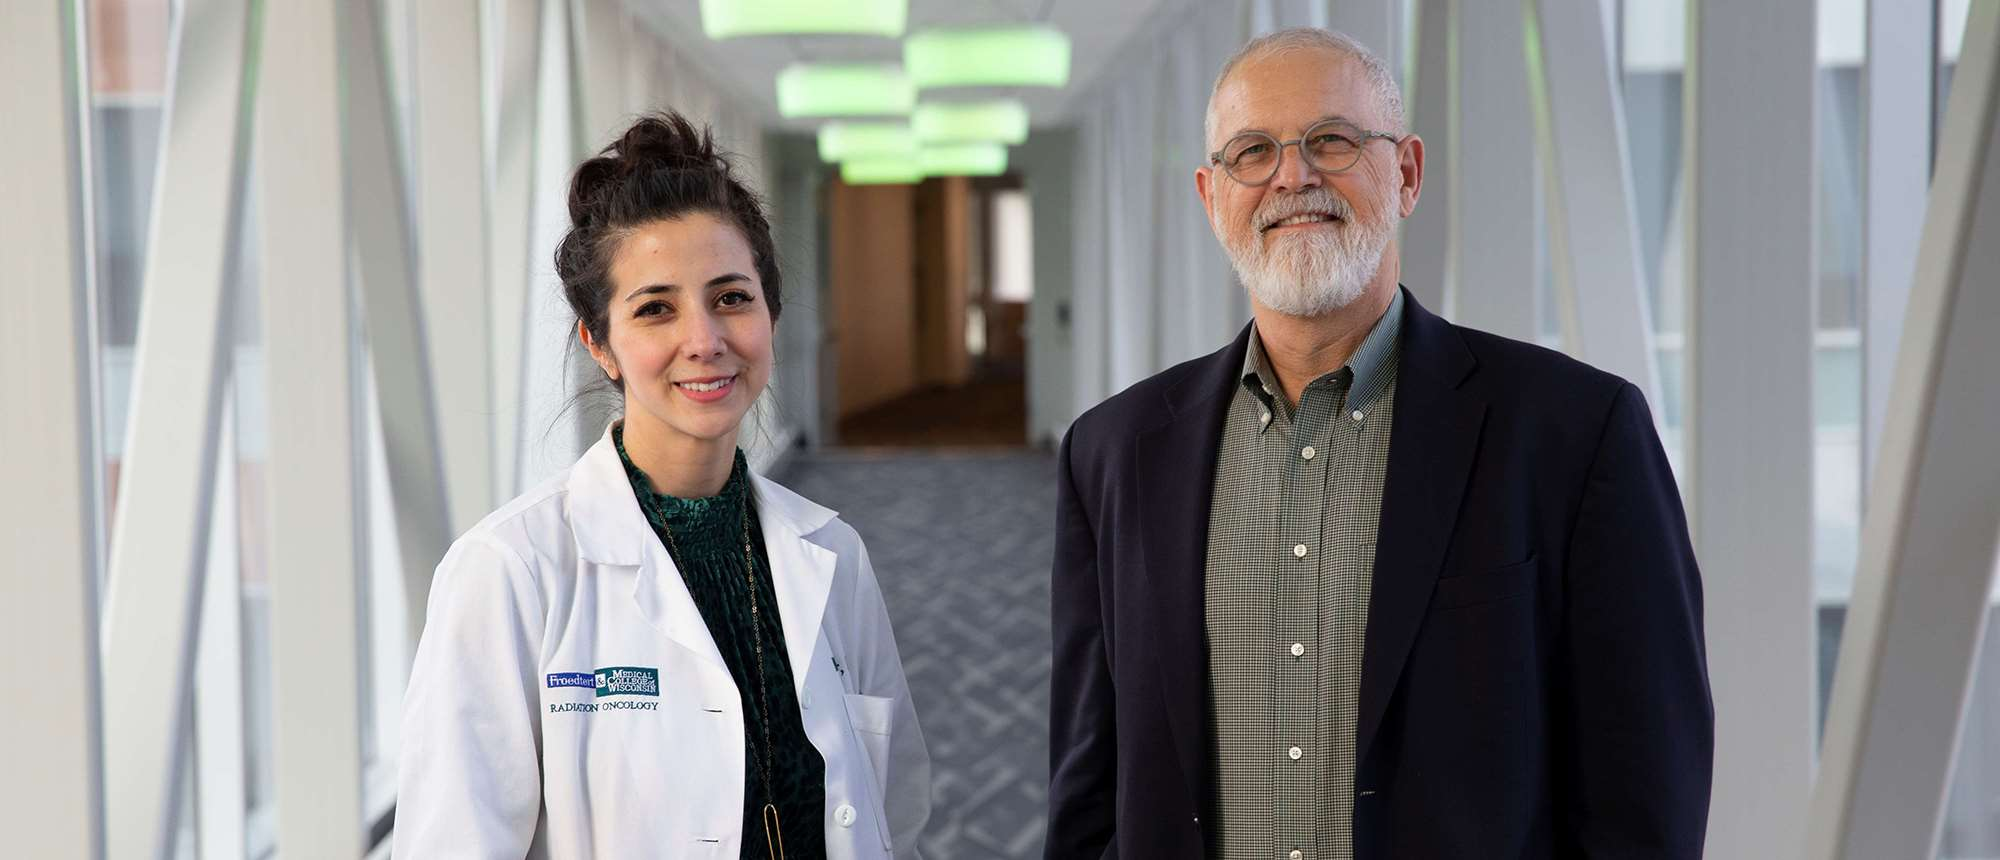 Malika Siker, MD and Alan G. Nyitray, PhD